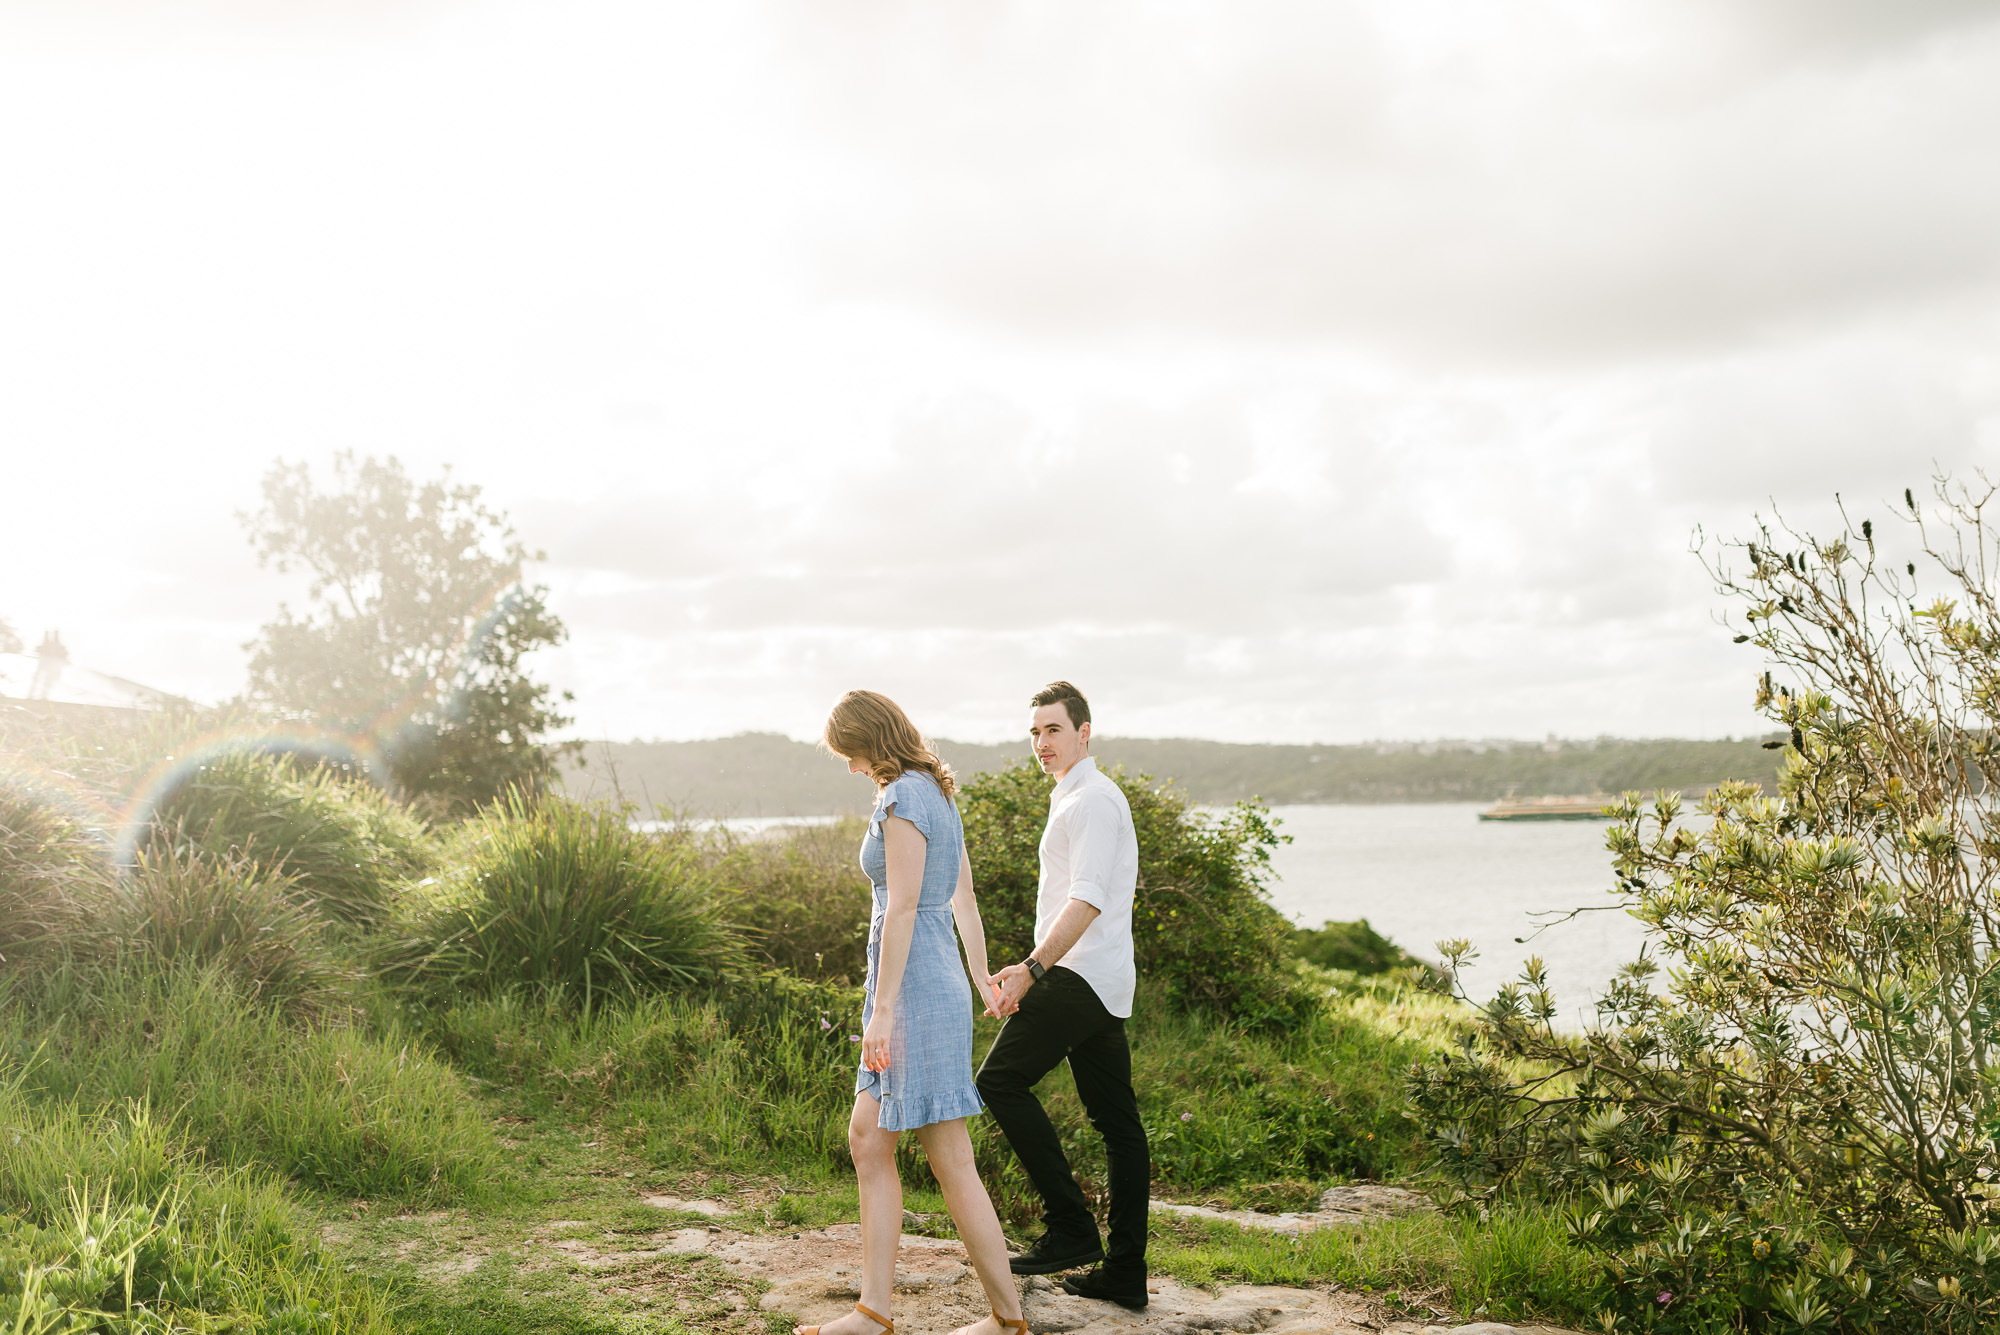 PhotographybyRenata_Proposal_Shoot_Watsons-Bay-Camp_Cove-268.JPG